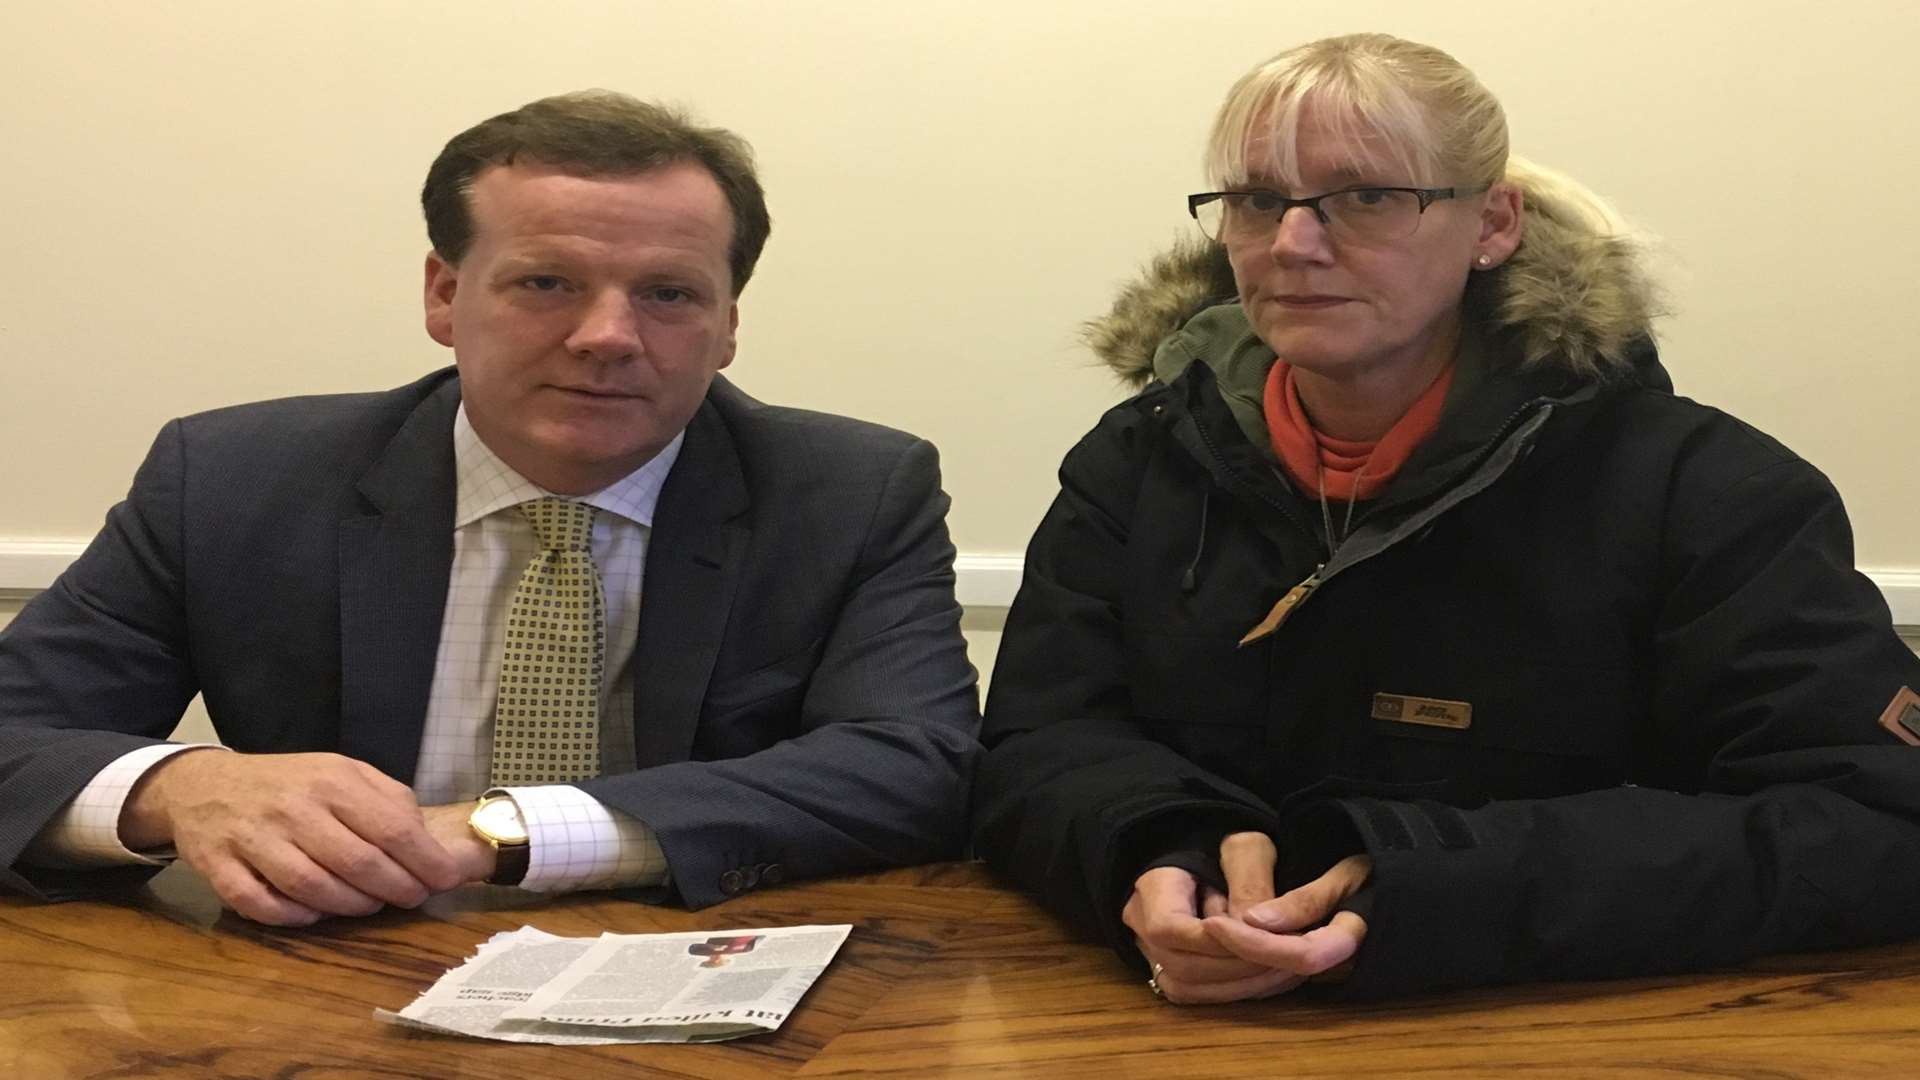 MP Charlie Elphicke and Michelle Fraser